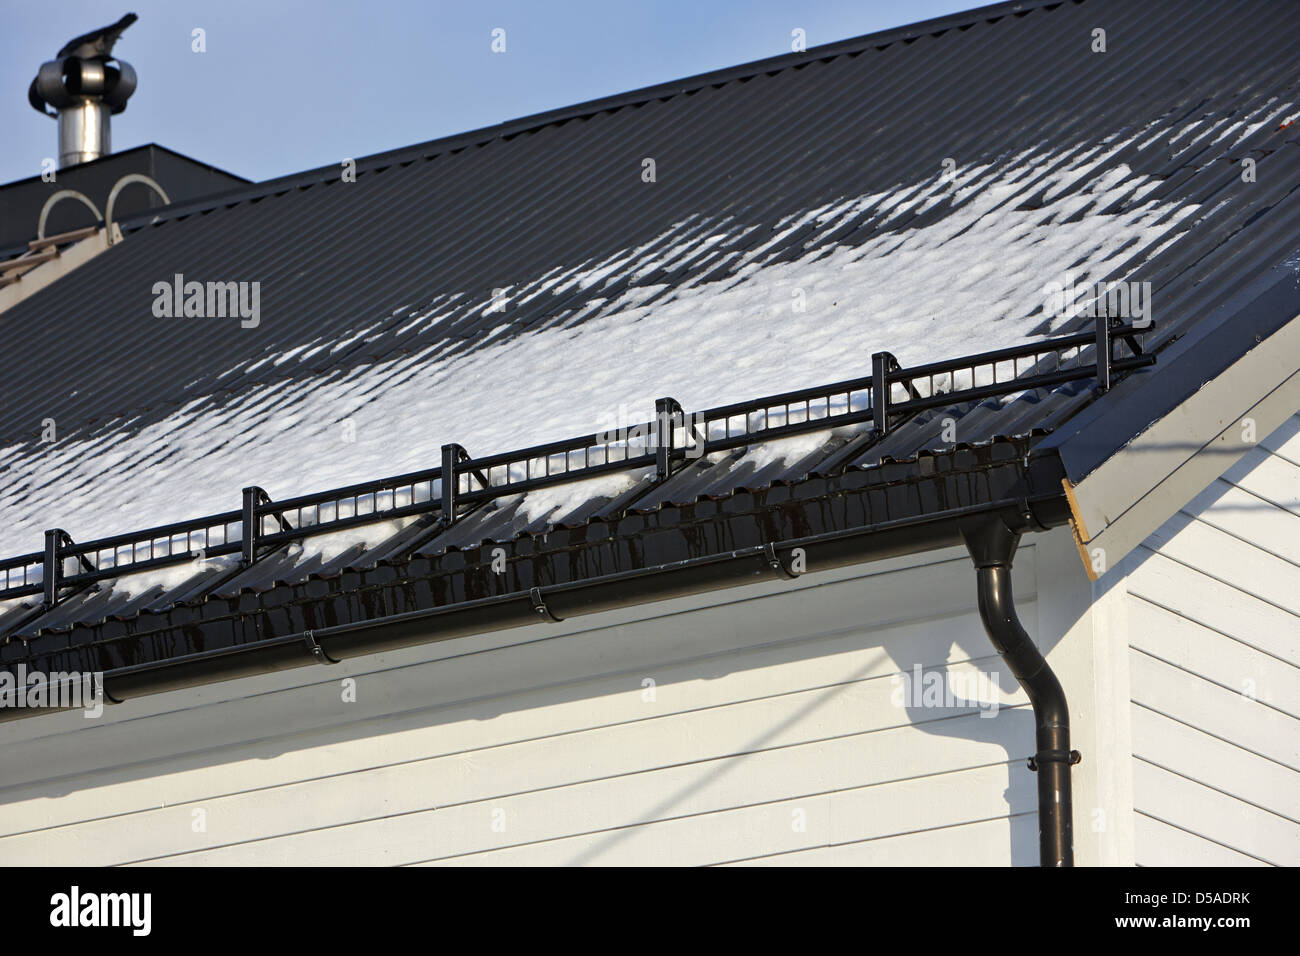 snow retention system guard on roof in kirkenes finnmark norway europe - Stock Image